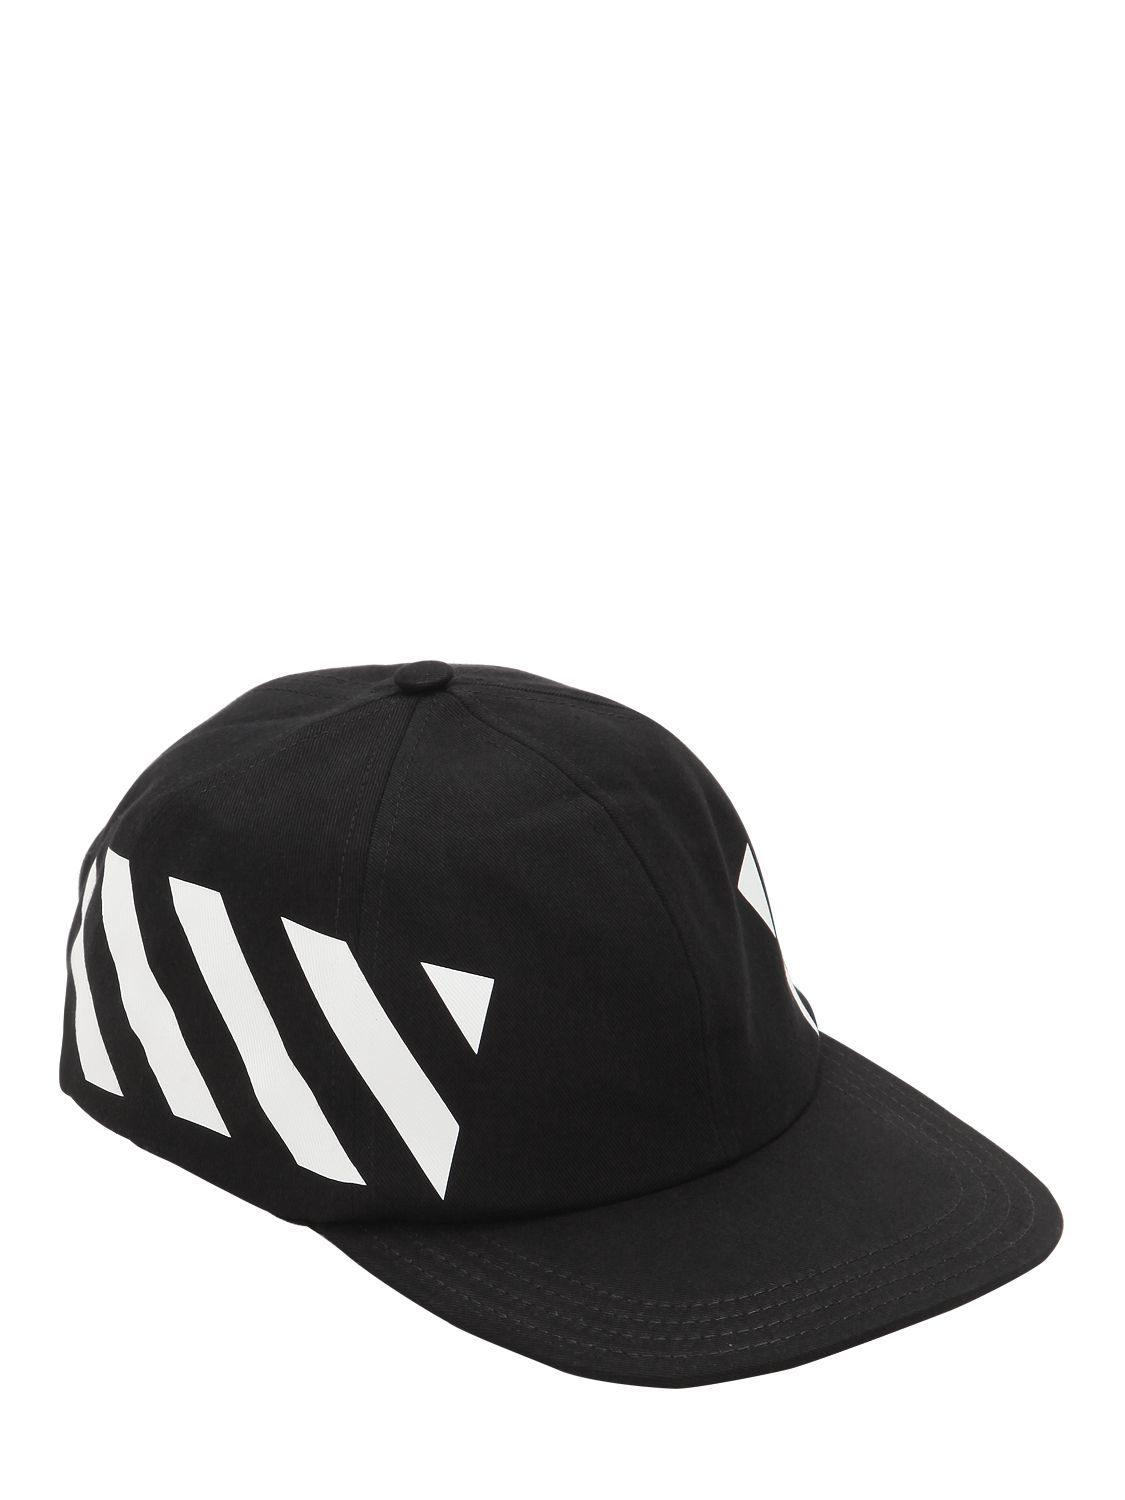 963244c649d Off-White c o Virgil Abloh - Black Printed Cotton Canvas Baseball Hat for.  View fullscreen